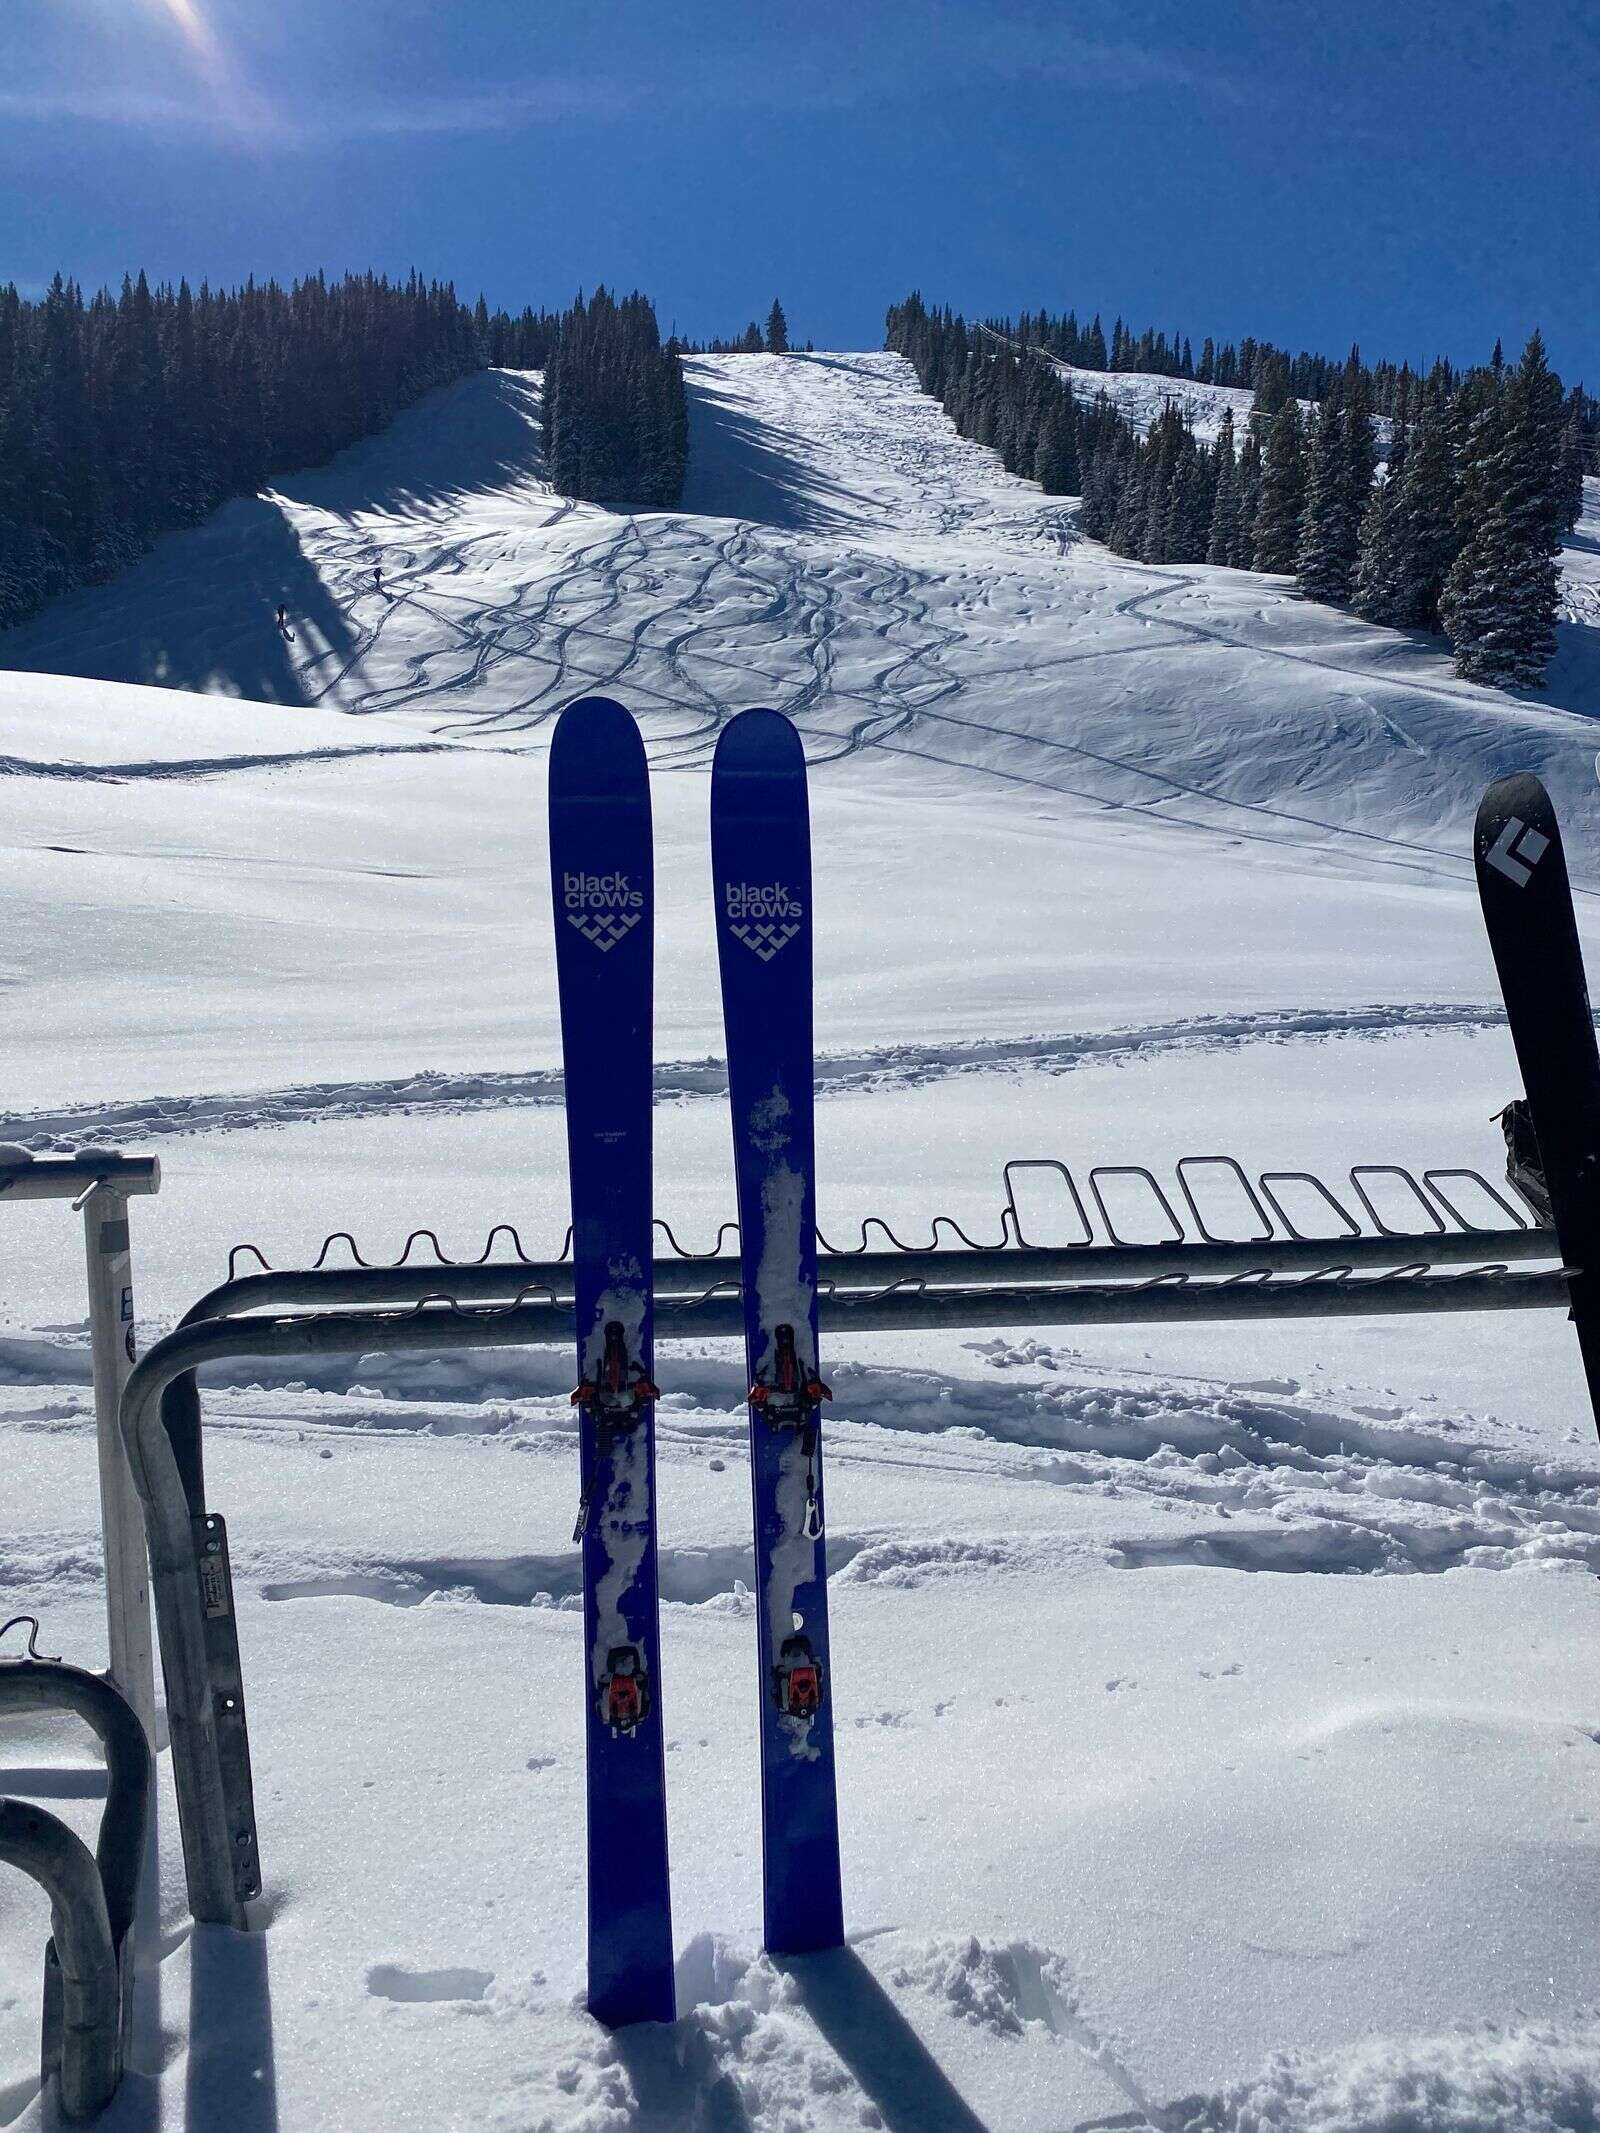 All dressed up and ready to go: Uphillers had the slopes of Aspen Highlands to themselves on Sunday. Their tracks are evident from the Merry-Go-Round restaurant. |Zach Nichols/courtesy photo